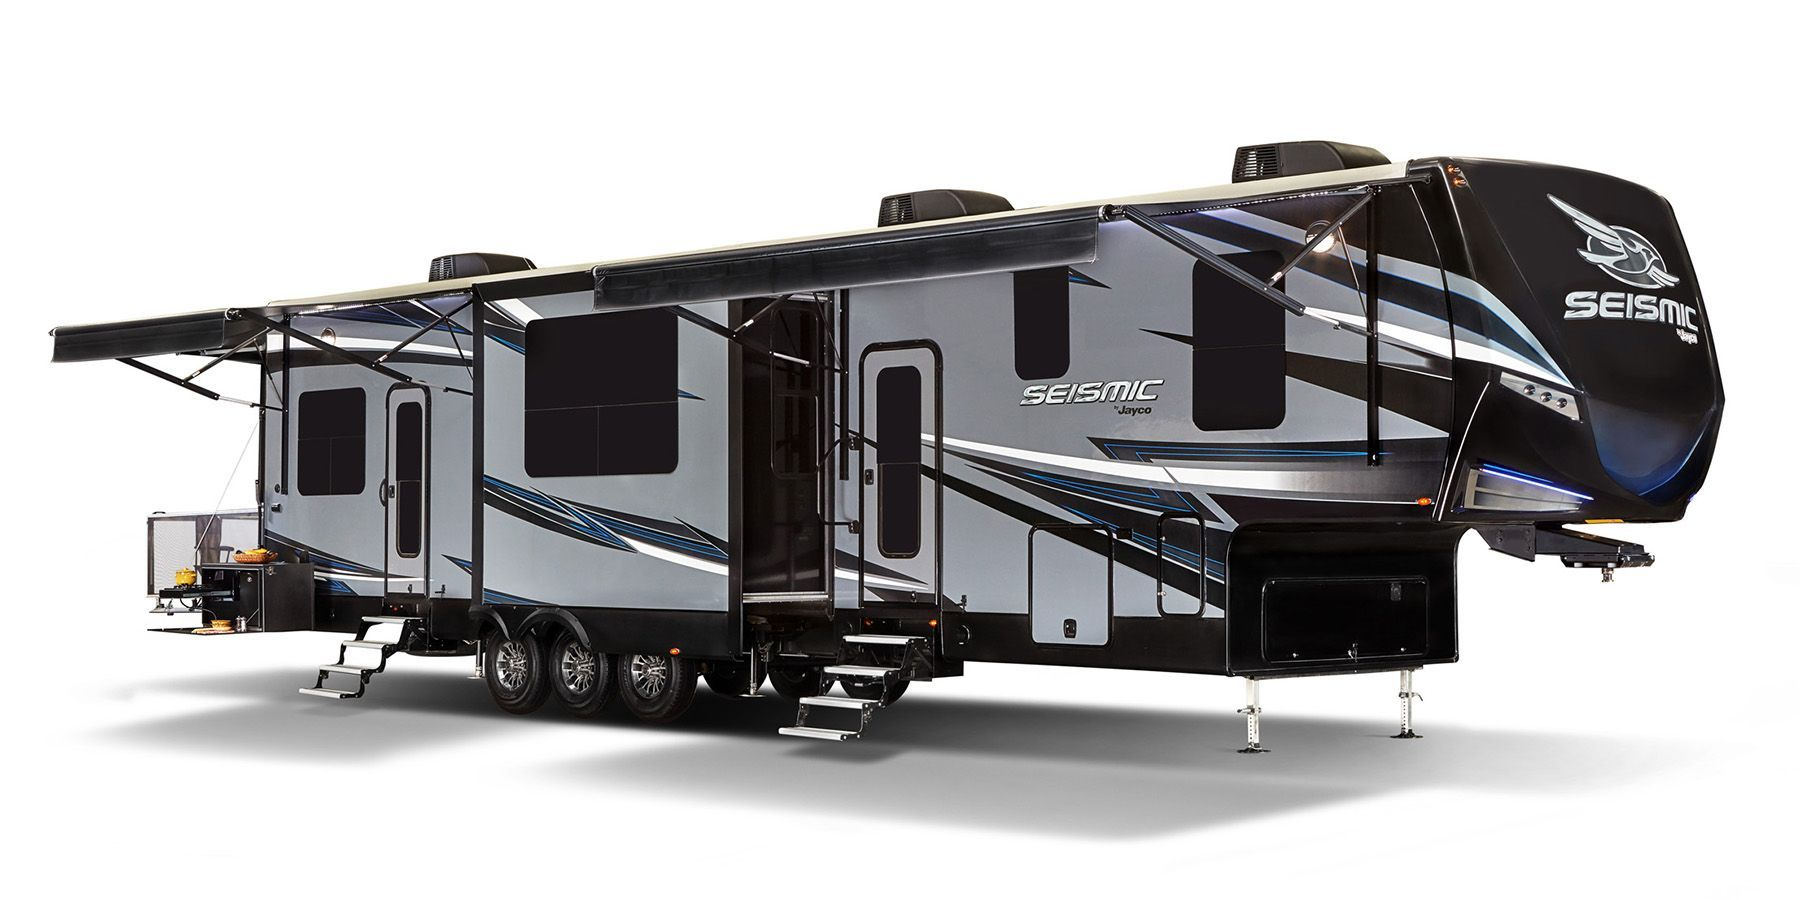 Jayco Seismic Fifth Wheel Toy Hauler Product Page Rv Steals